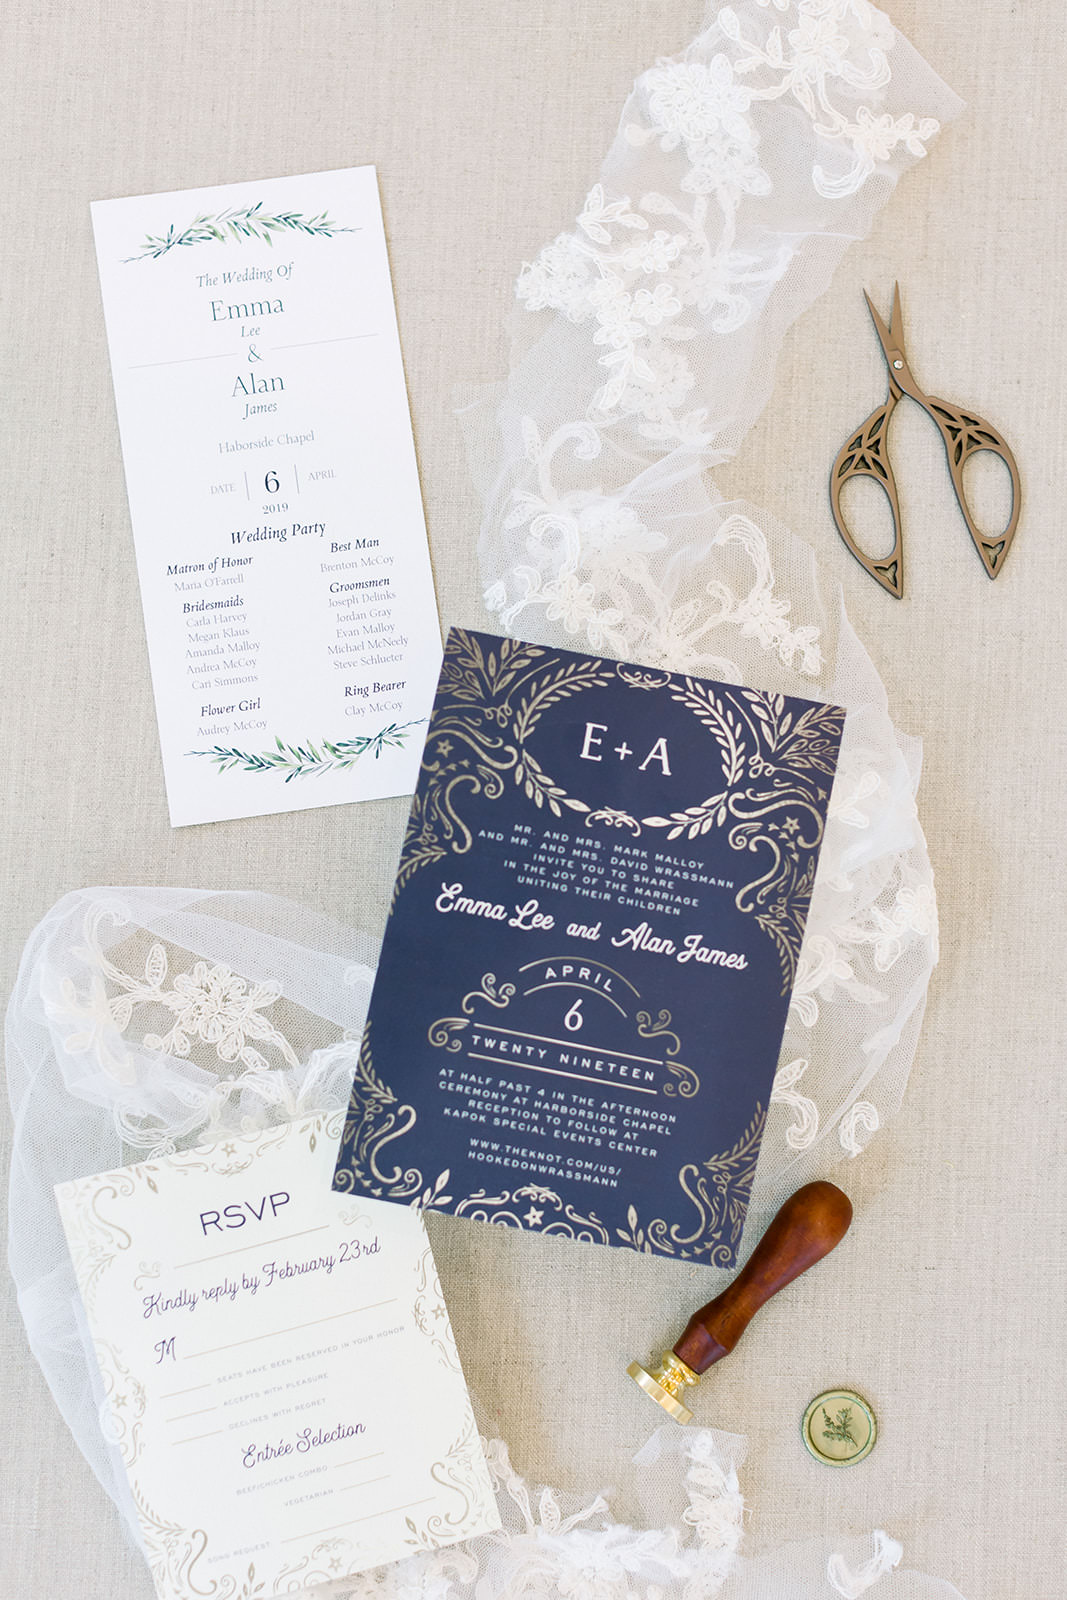 Luxurious Dark Blue Wedding Invitation Suite with Gold Foil Detailing | Tampa Bay Wedding Photographers Shauna and Jordon Photography